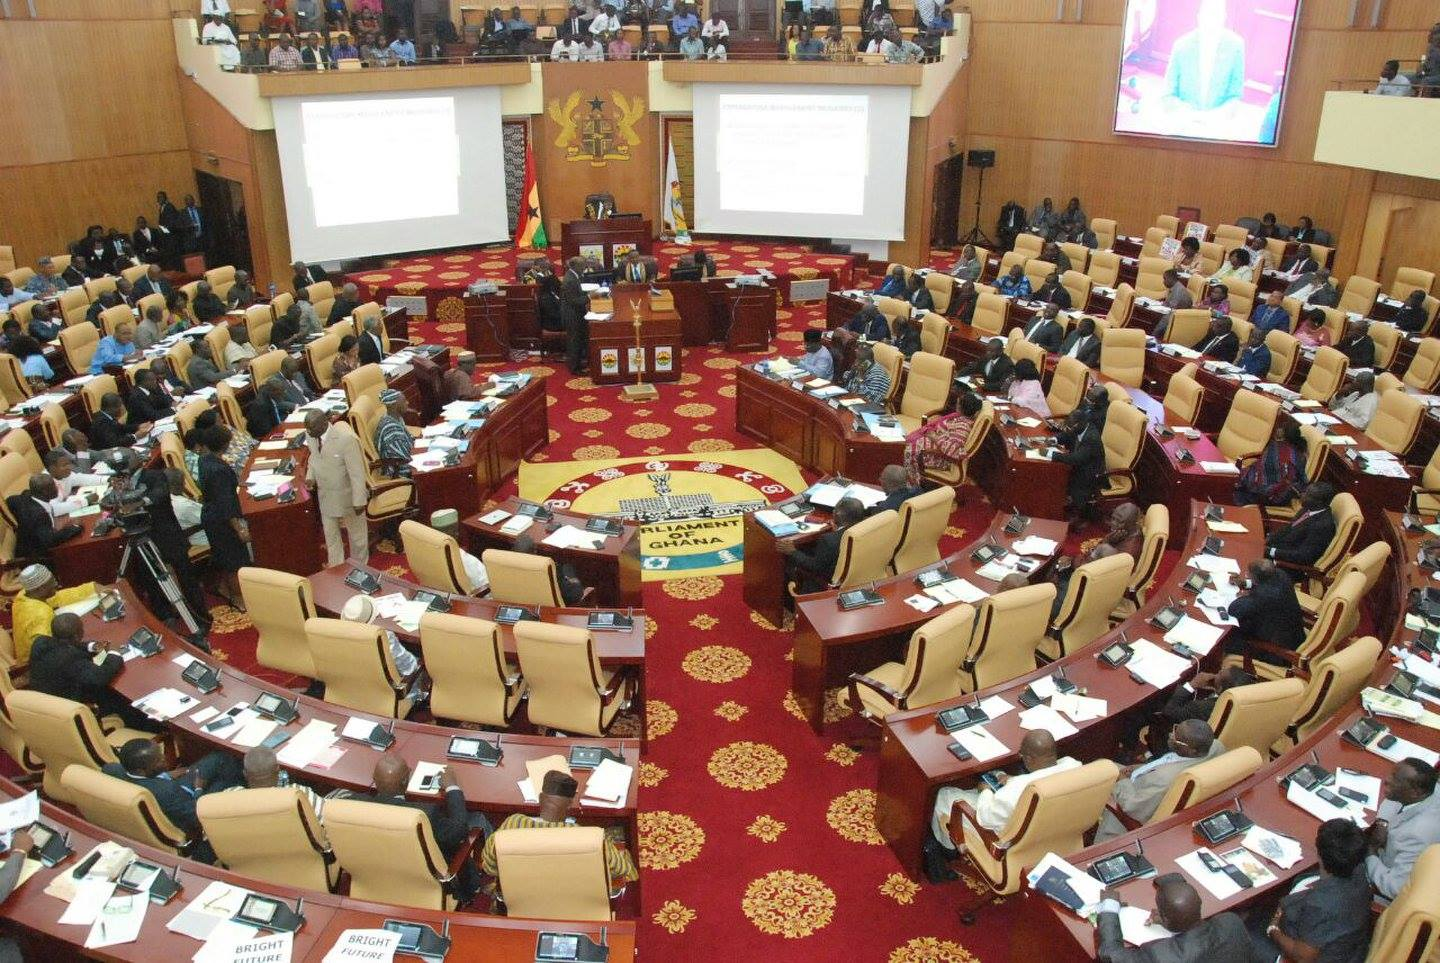 MPs not beyond reproach